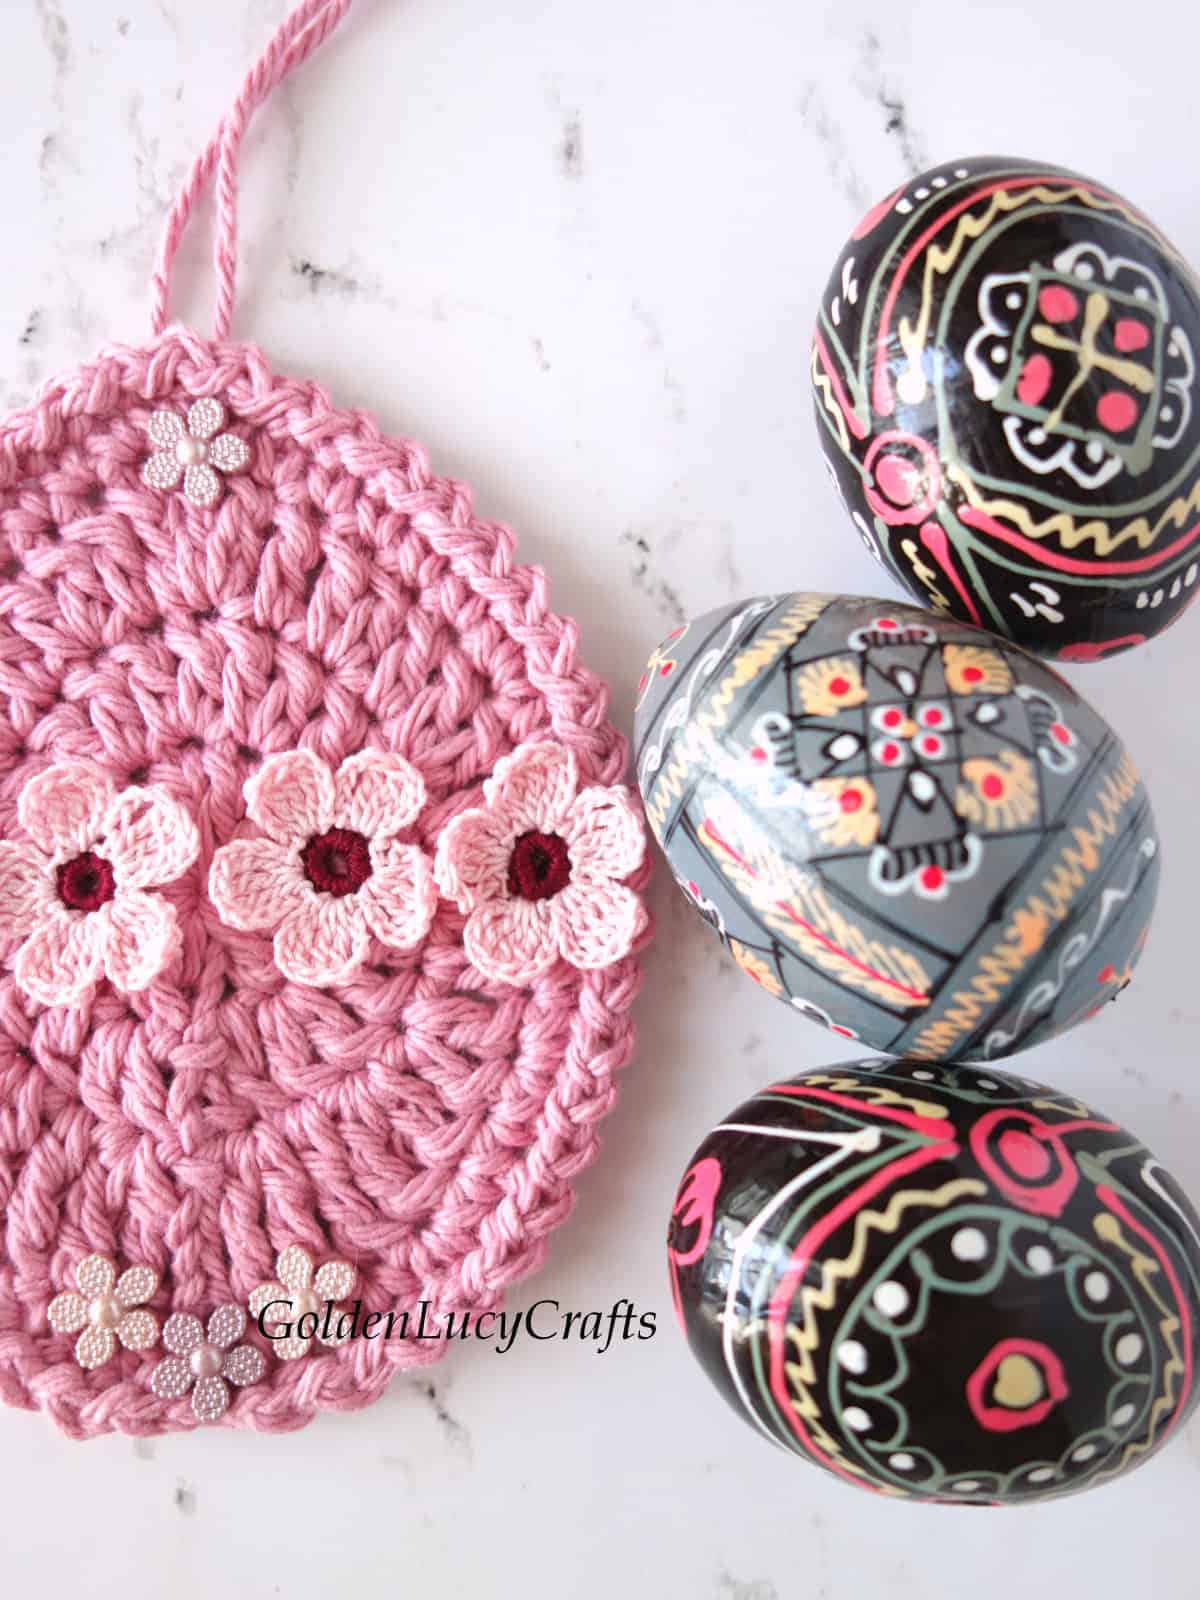 Close up image of crocheted Easter egg ornament embellished with small flowers, three wooden painted eggs next to it.